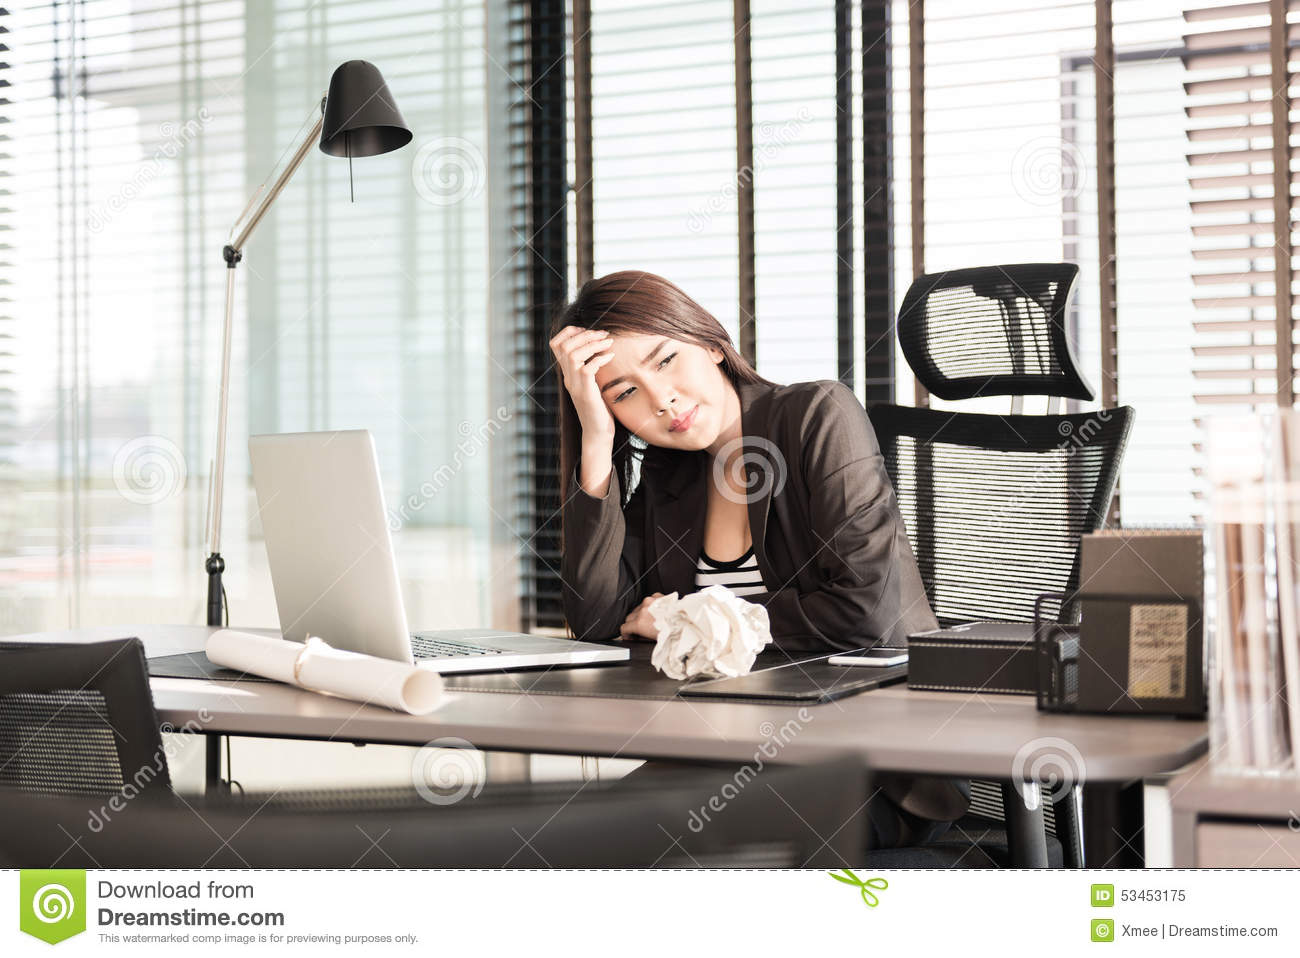 woman office furniture. Tired And Sleepy Young Business Woman At Office Desk Stock Image - Of Pretty, Beautiful: 53453175 Furniture E